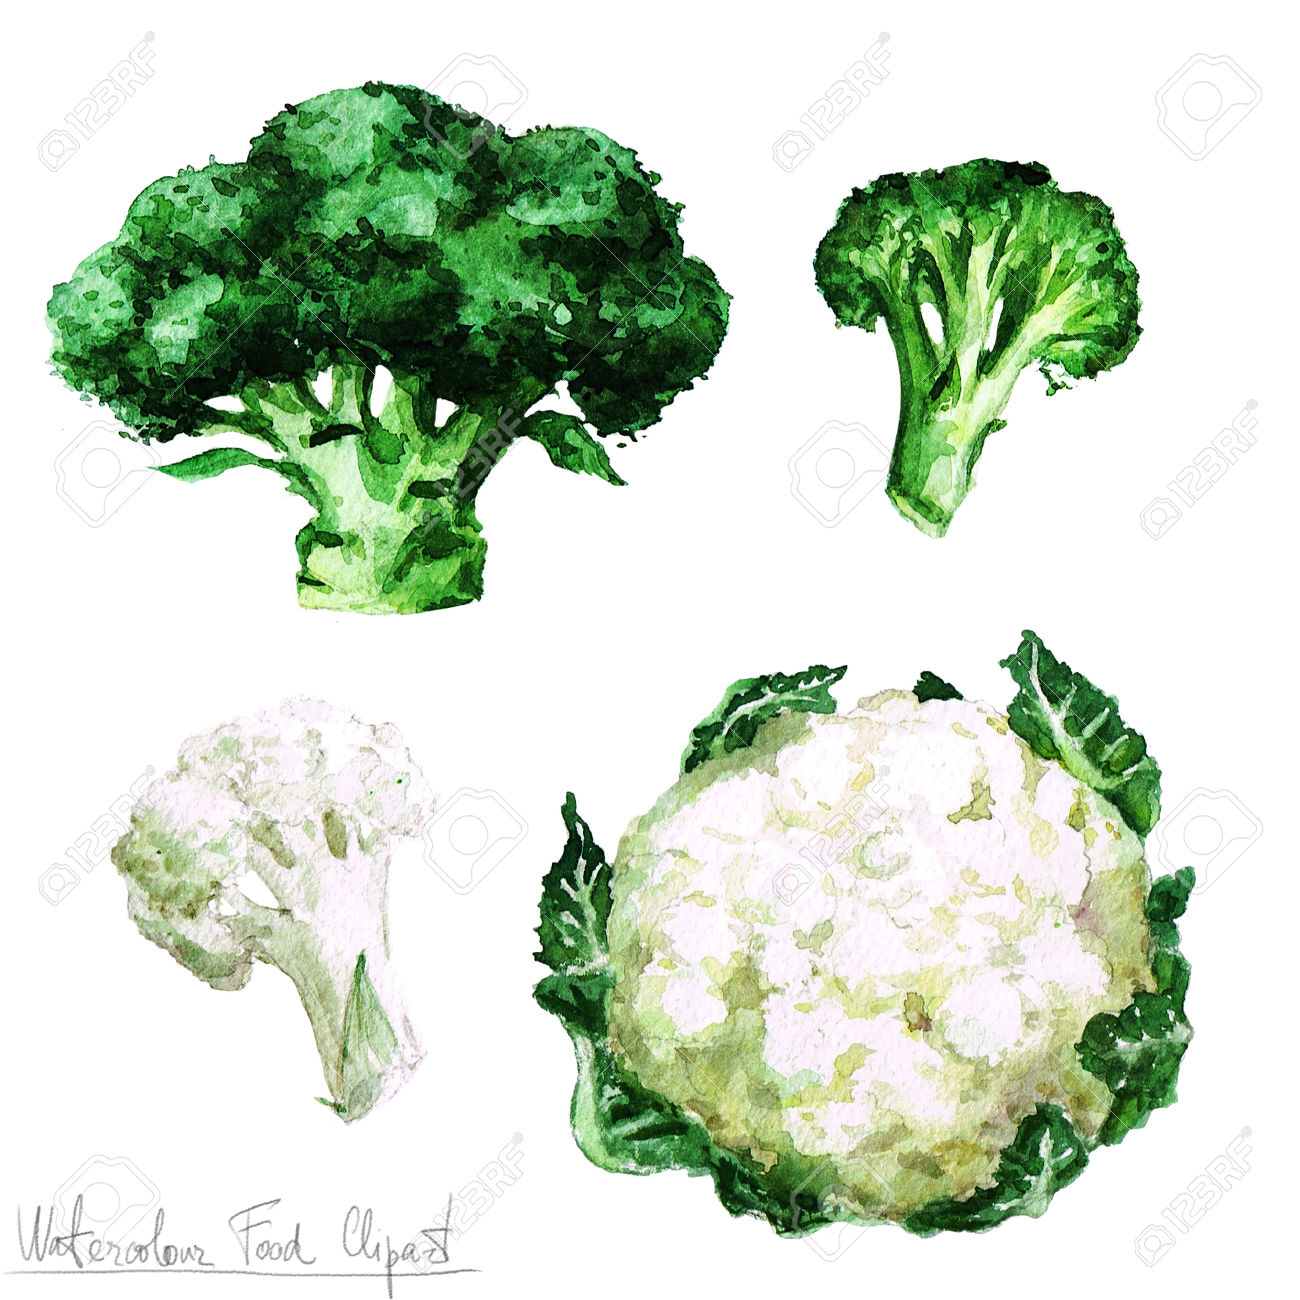 Watercolor Food Clipart.